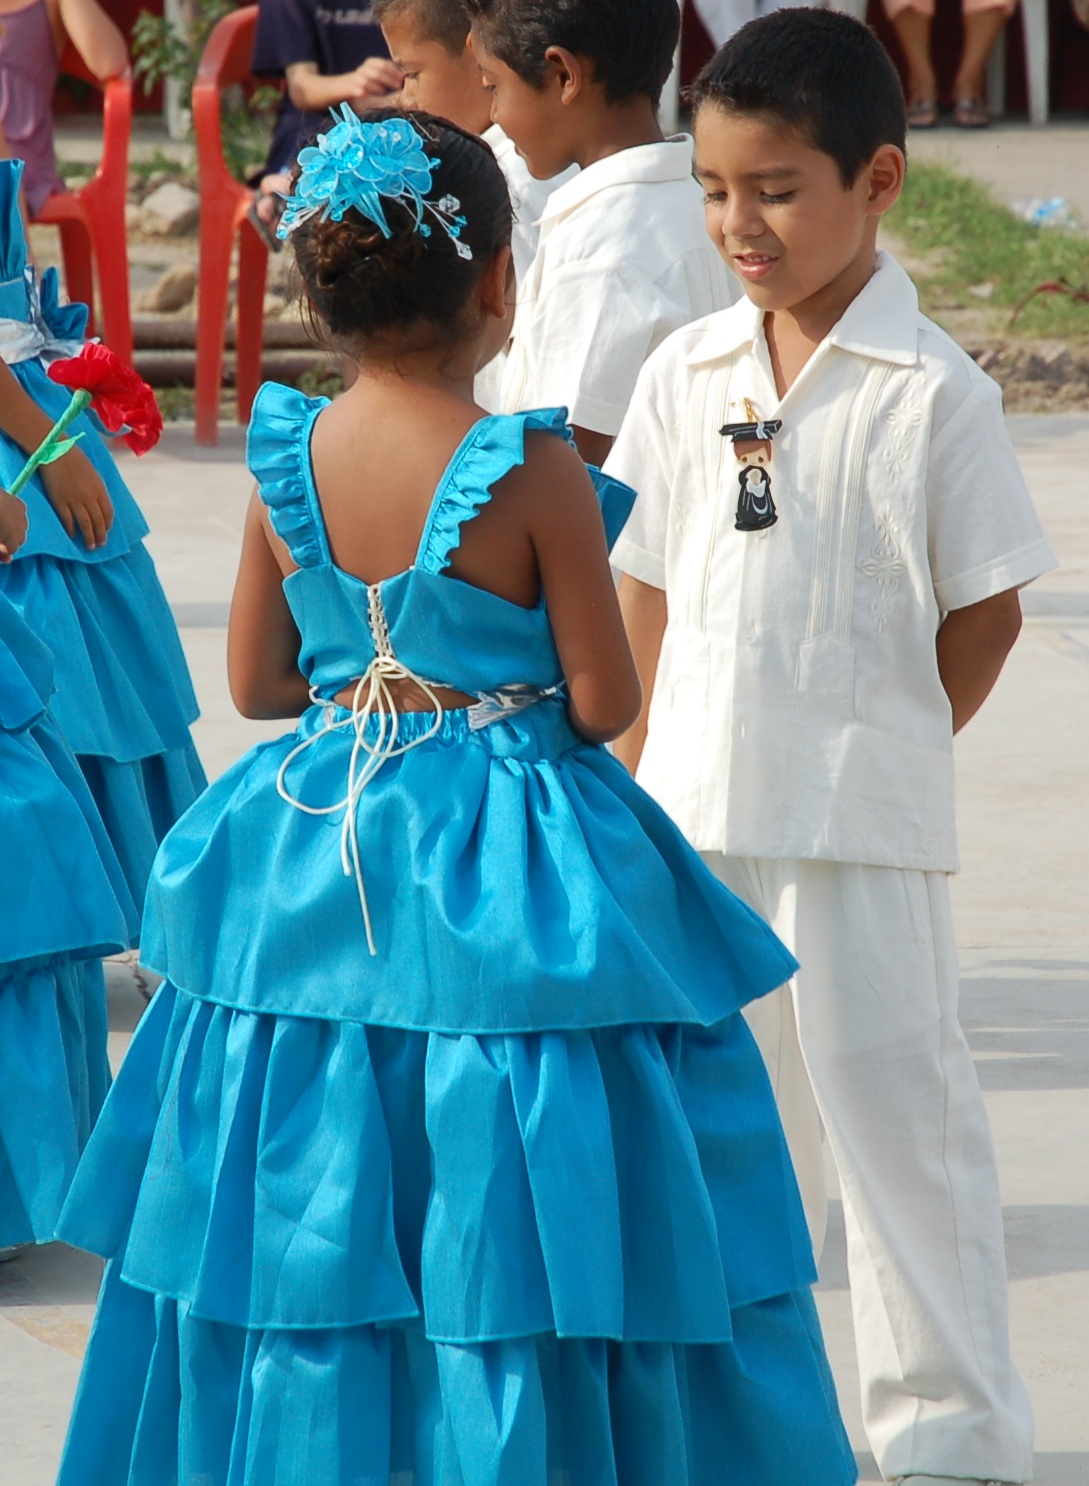 8th, Corral del Risco Kindergarten 2011 celebrated their graduation ...